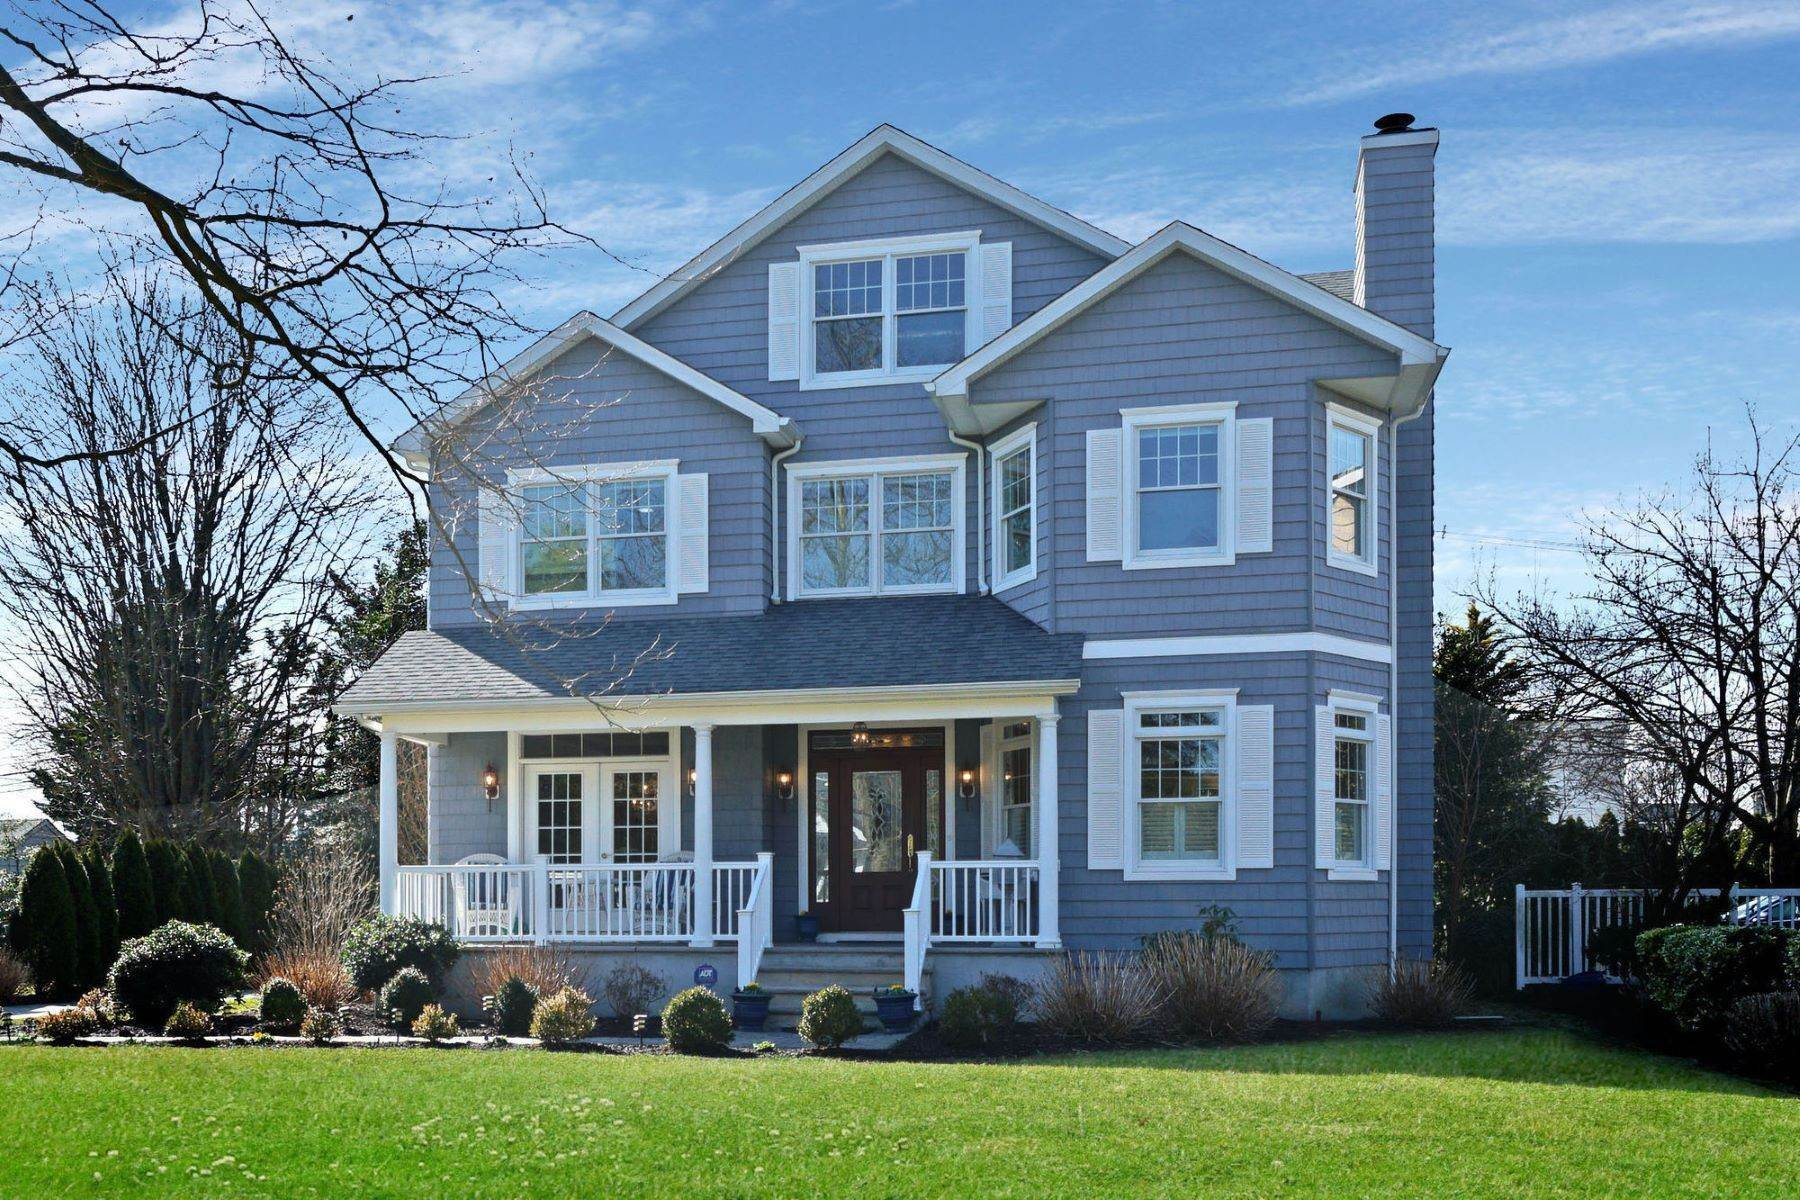 Property for Sale at Classic Shore Colonial 510 Crescent Parkway Sea Girt, New Jersey 08750 United States